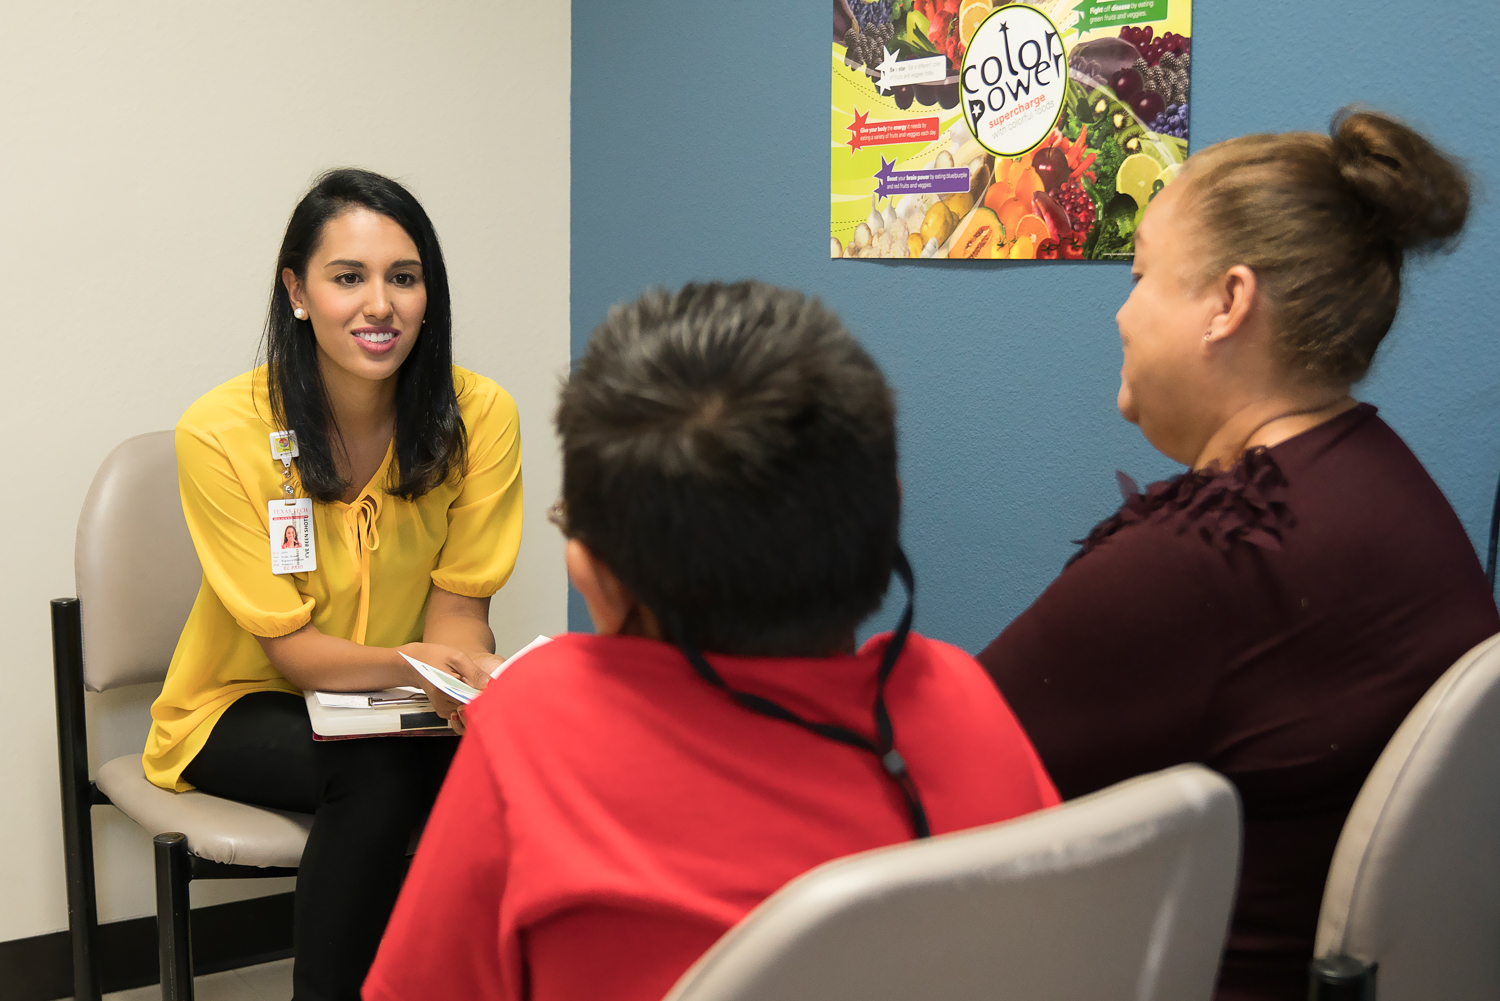 Pediatrics Clinic Helps Children Rethink Their Eating Habits